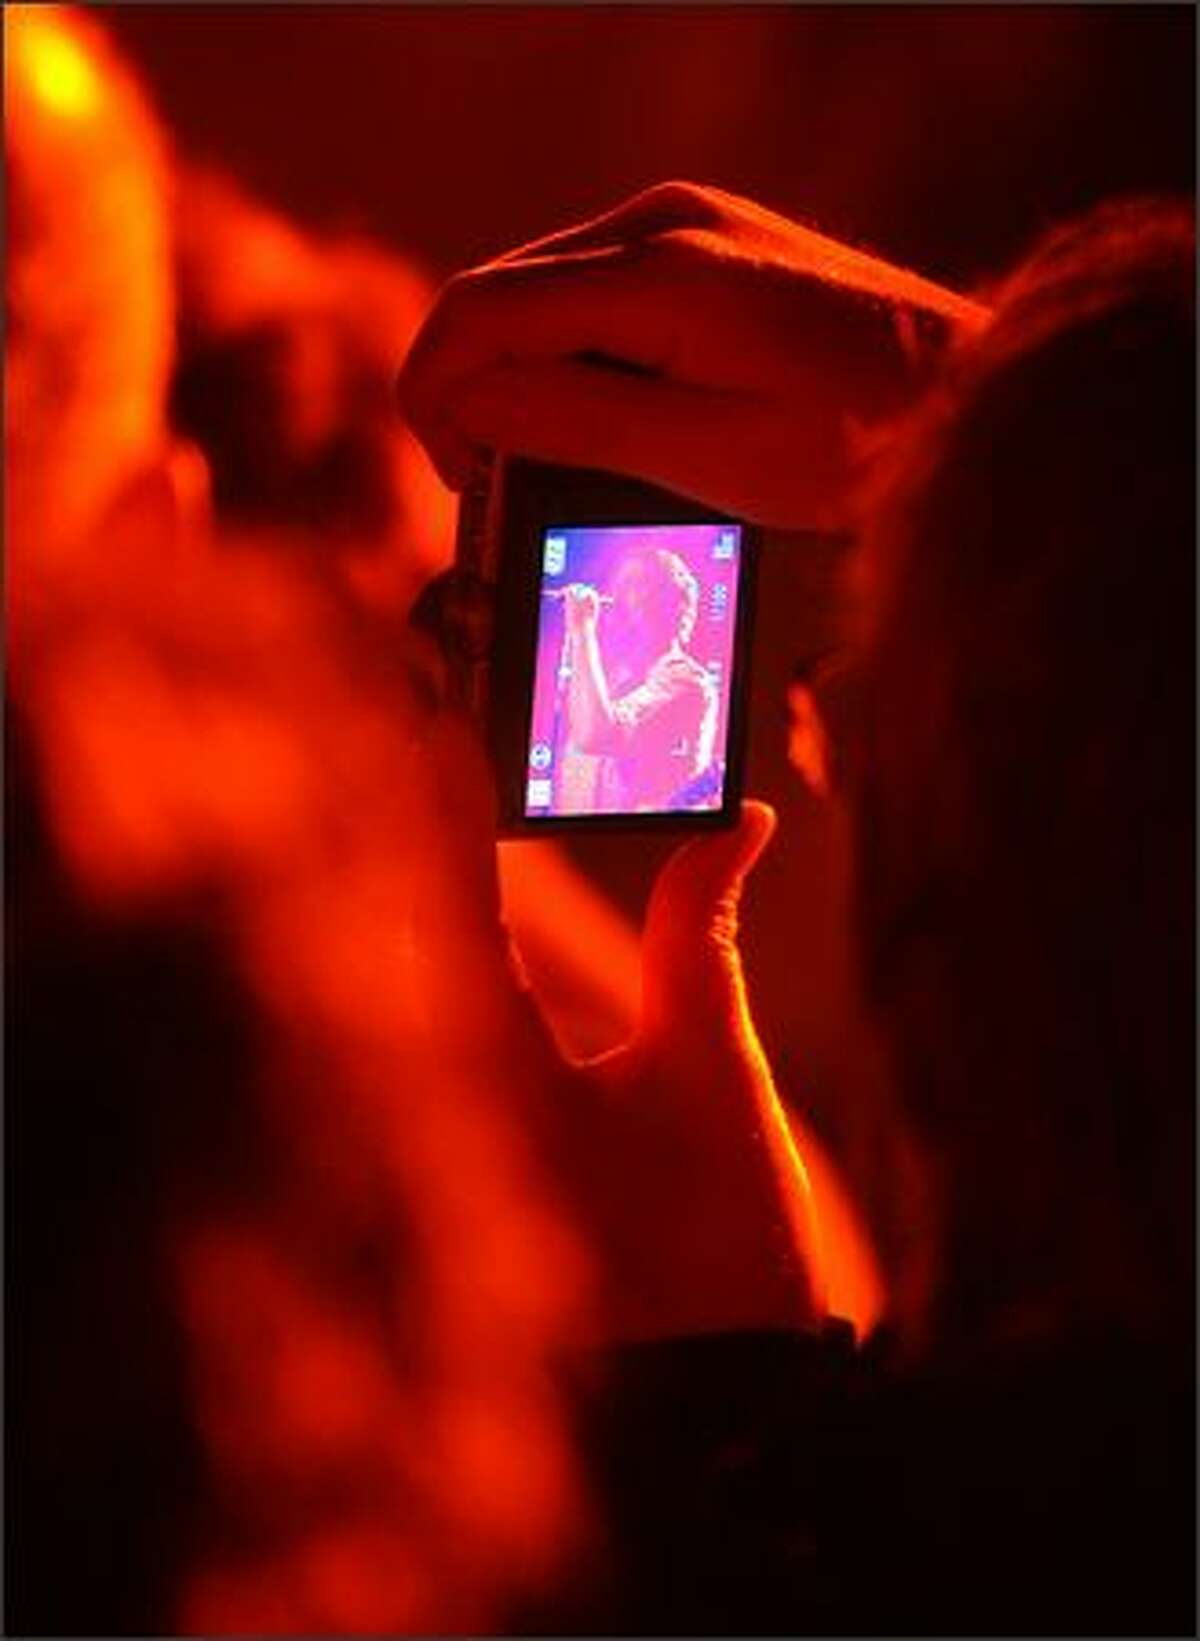 A fan snaps a picture of Patterson Hood of the Drive-By Truckers as they perform at the Showbox Sodo in Seattle on Thursday night.